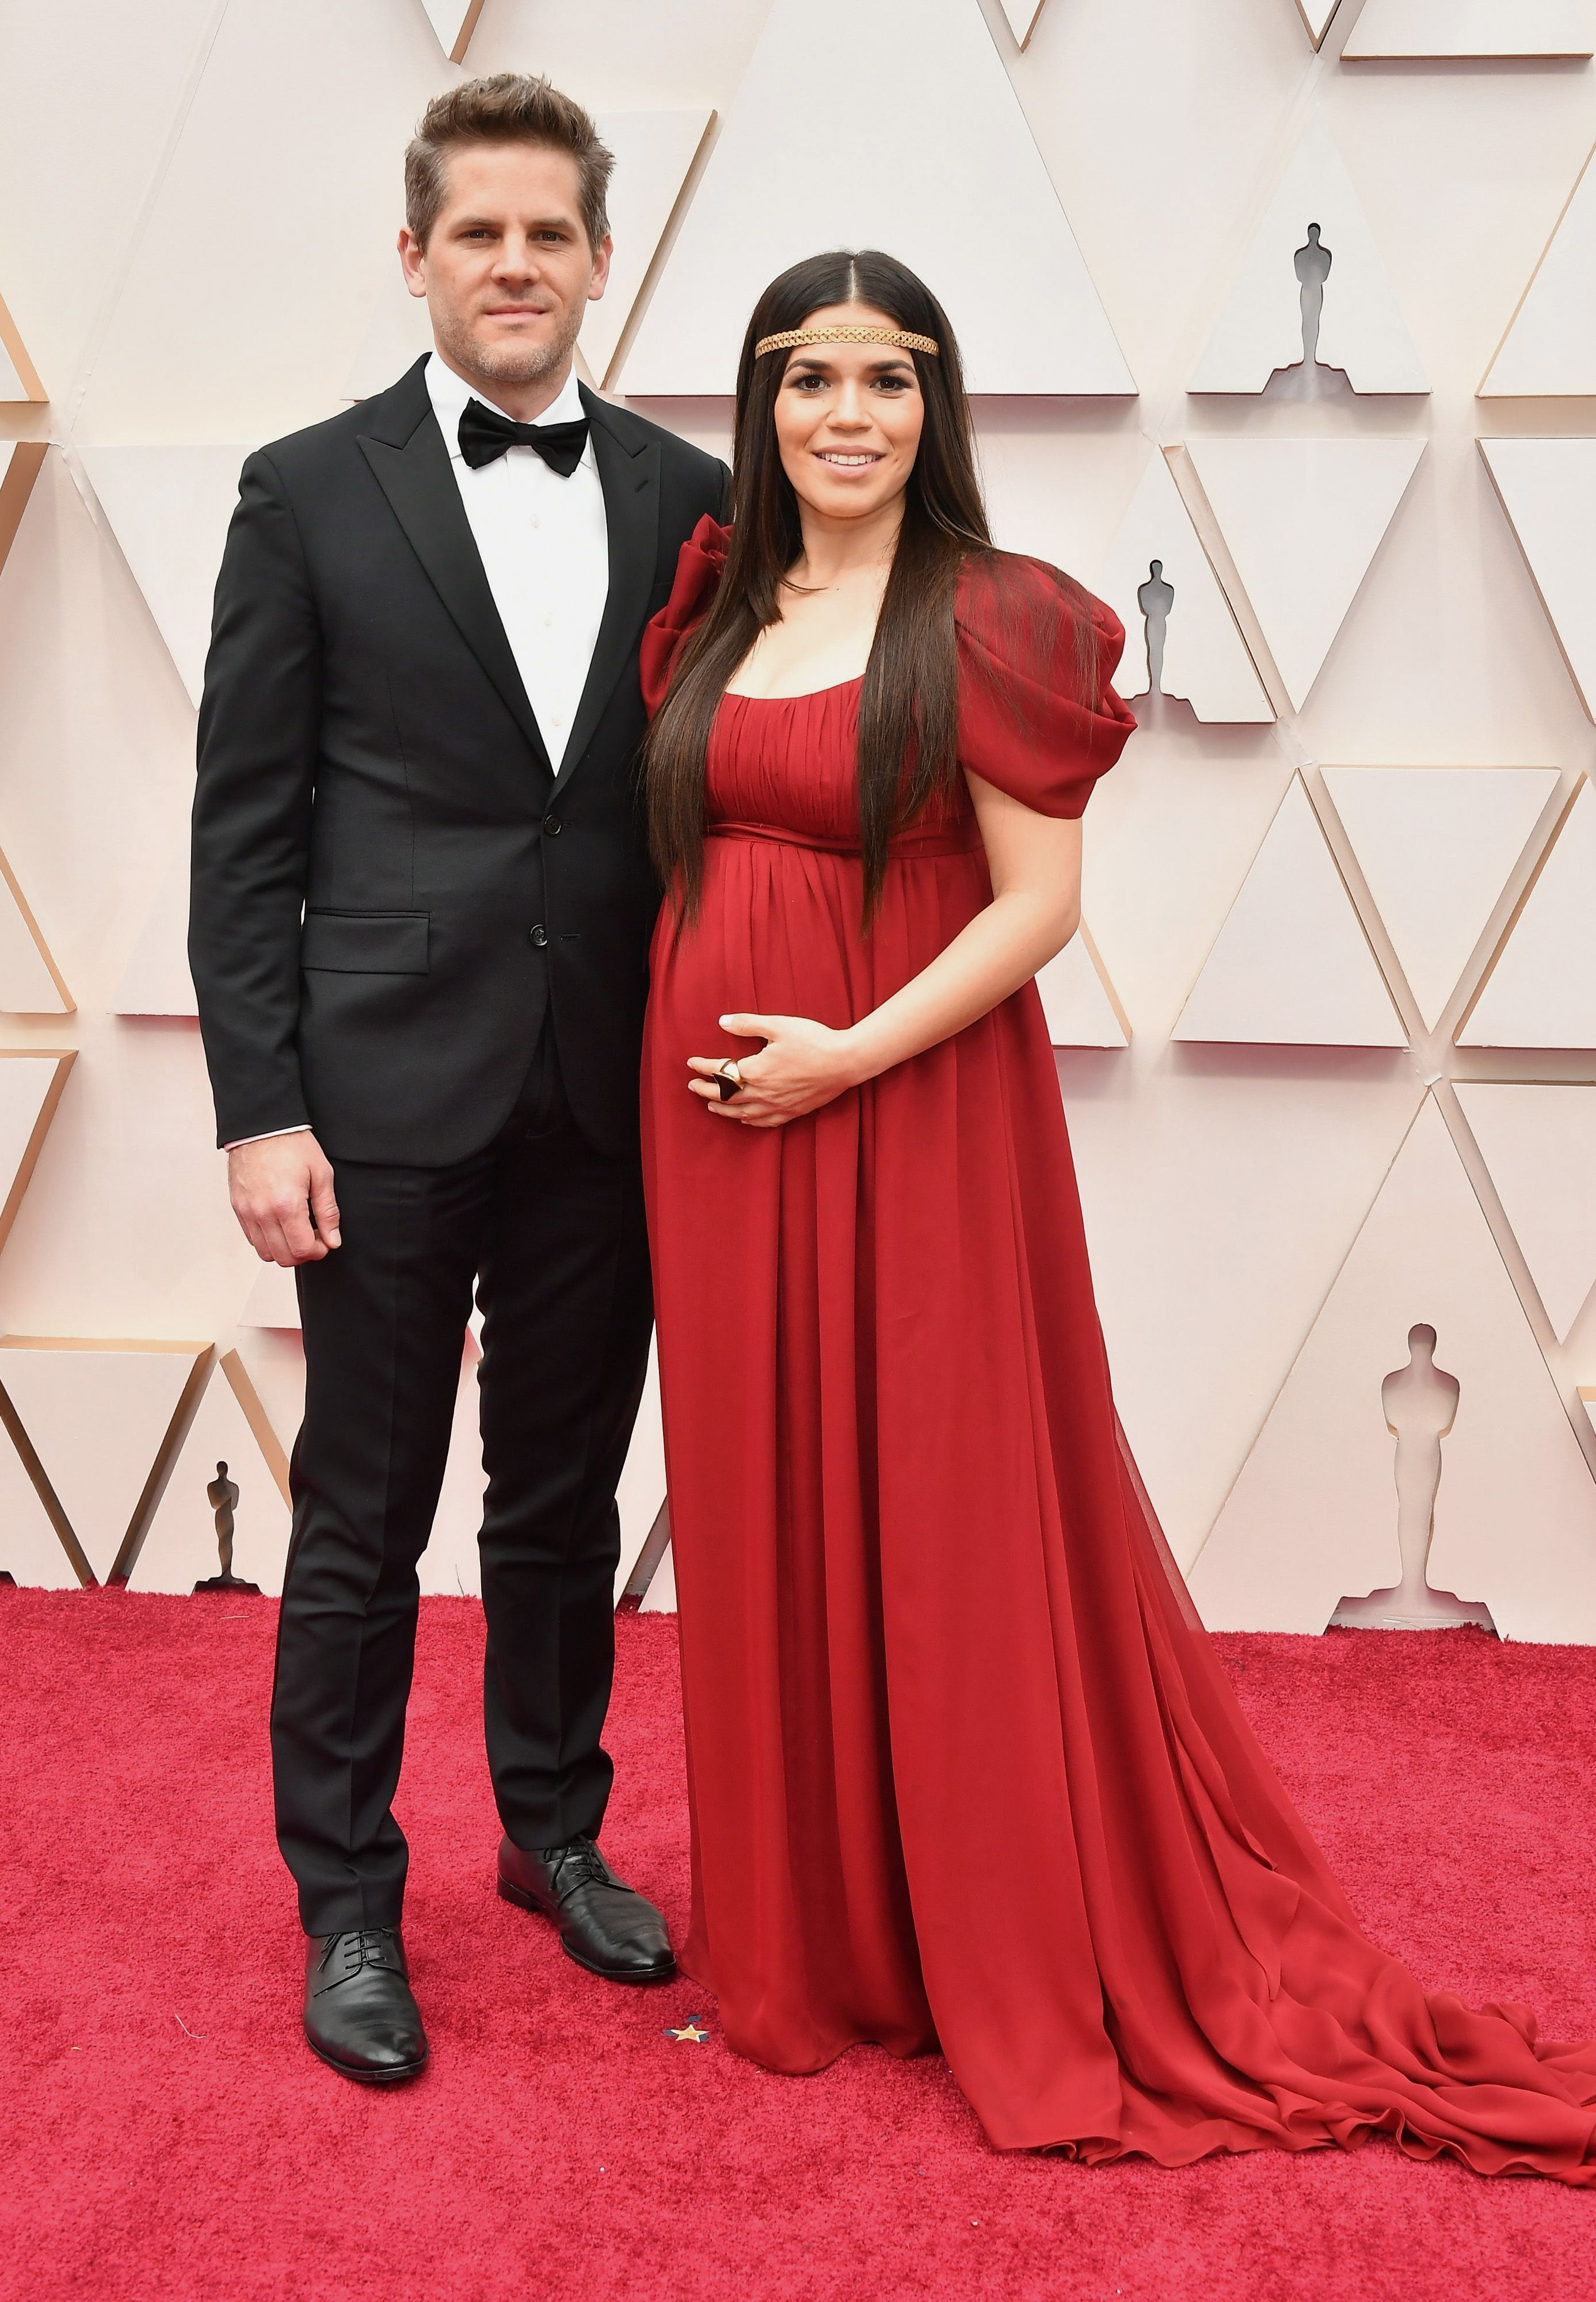 HOLLYWOOD, CALIFORNIA - FEBRUARY 09: (L-R) Ryan Piers Williams and America Ferrera attend the 92nd Annual Academy Awards at Hollywood and Highland on February 09, 2020 in Hollywood, California. (Photo by Amy Sussman/Getty Images)